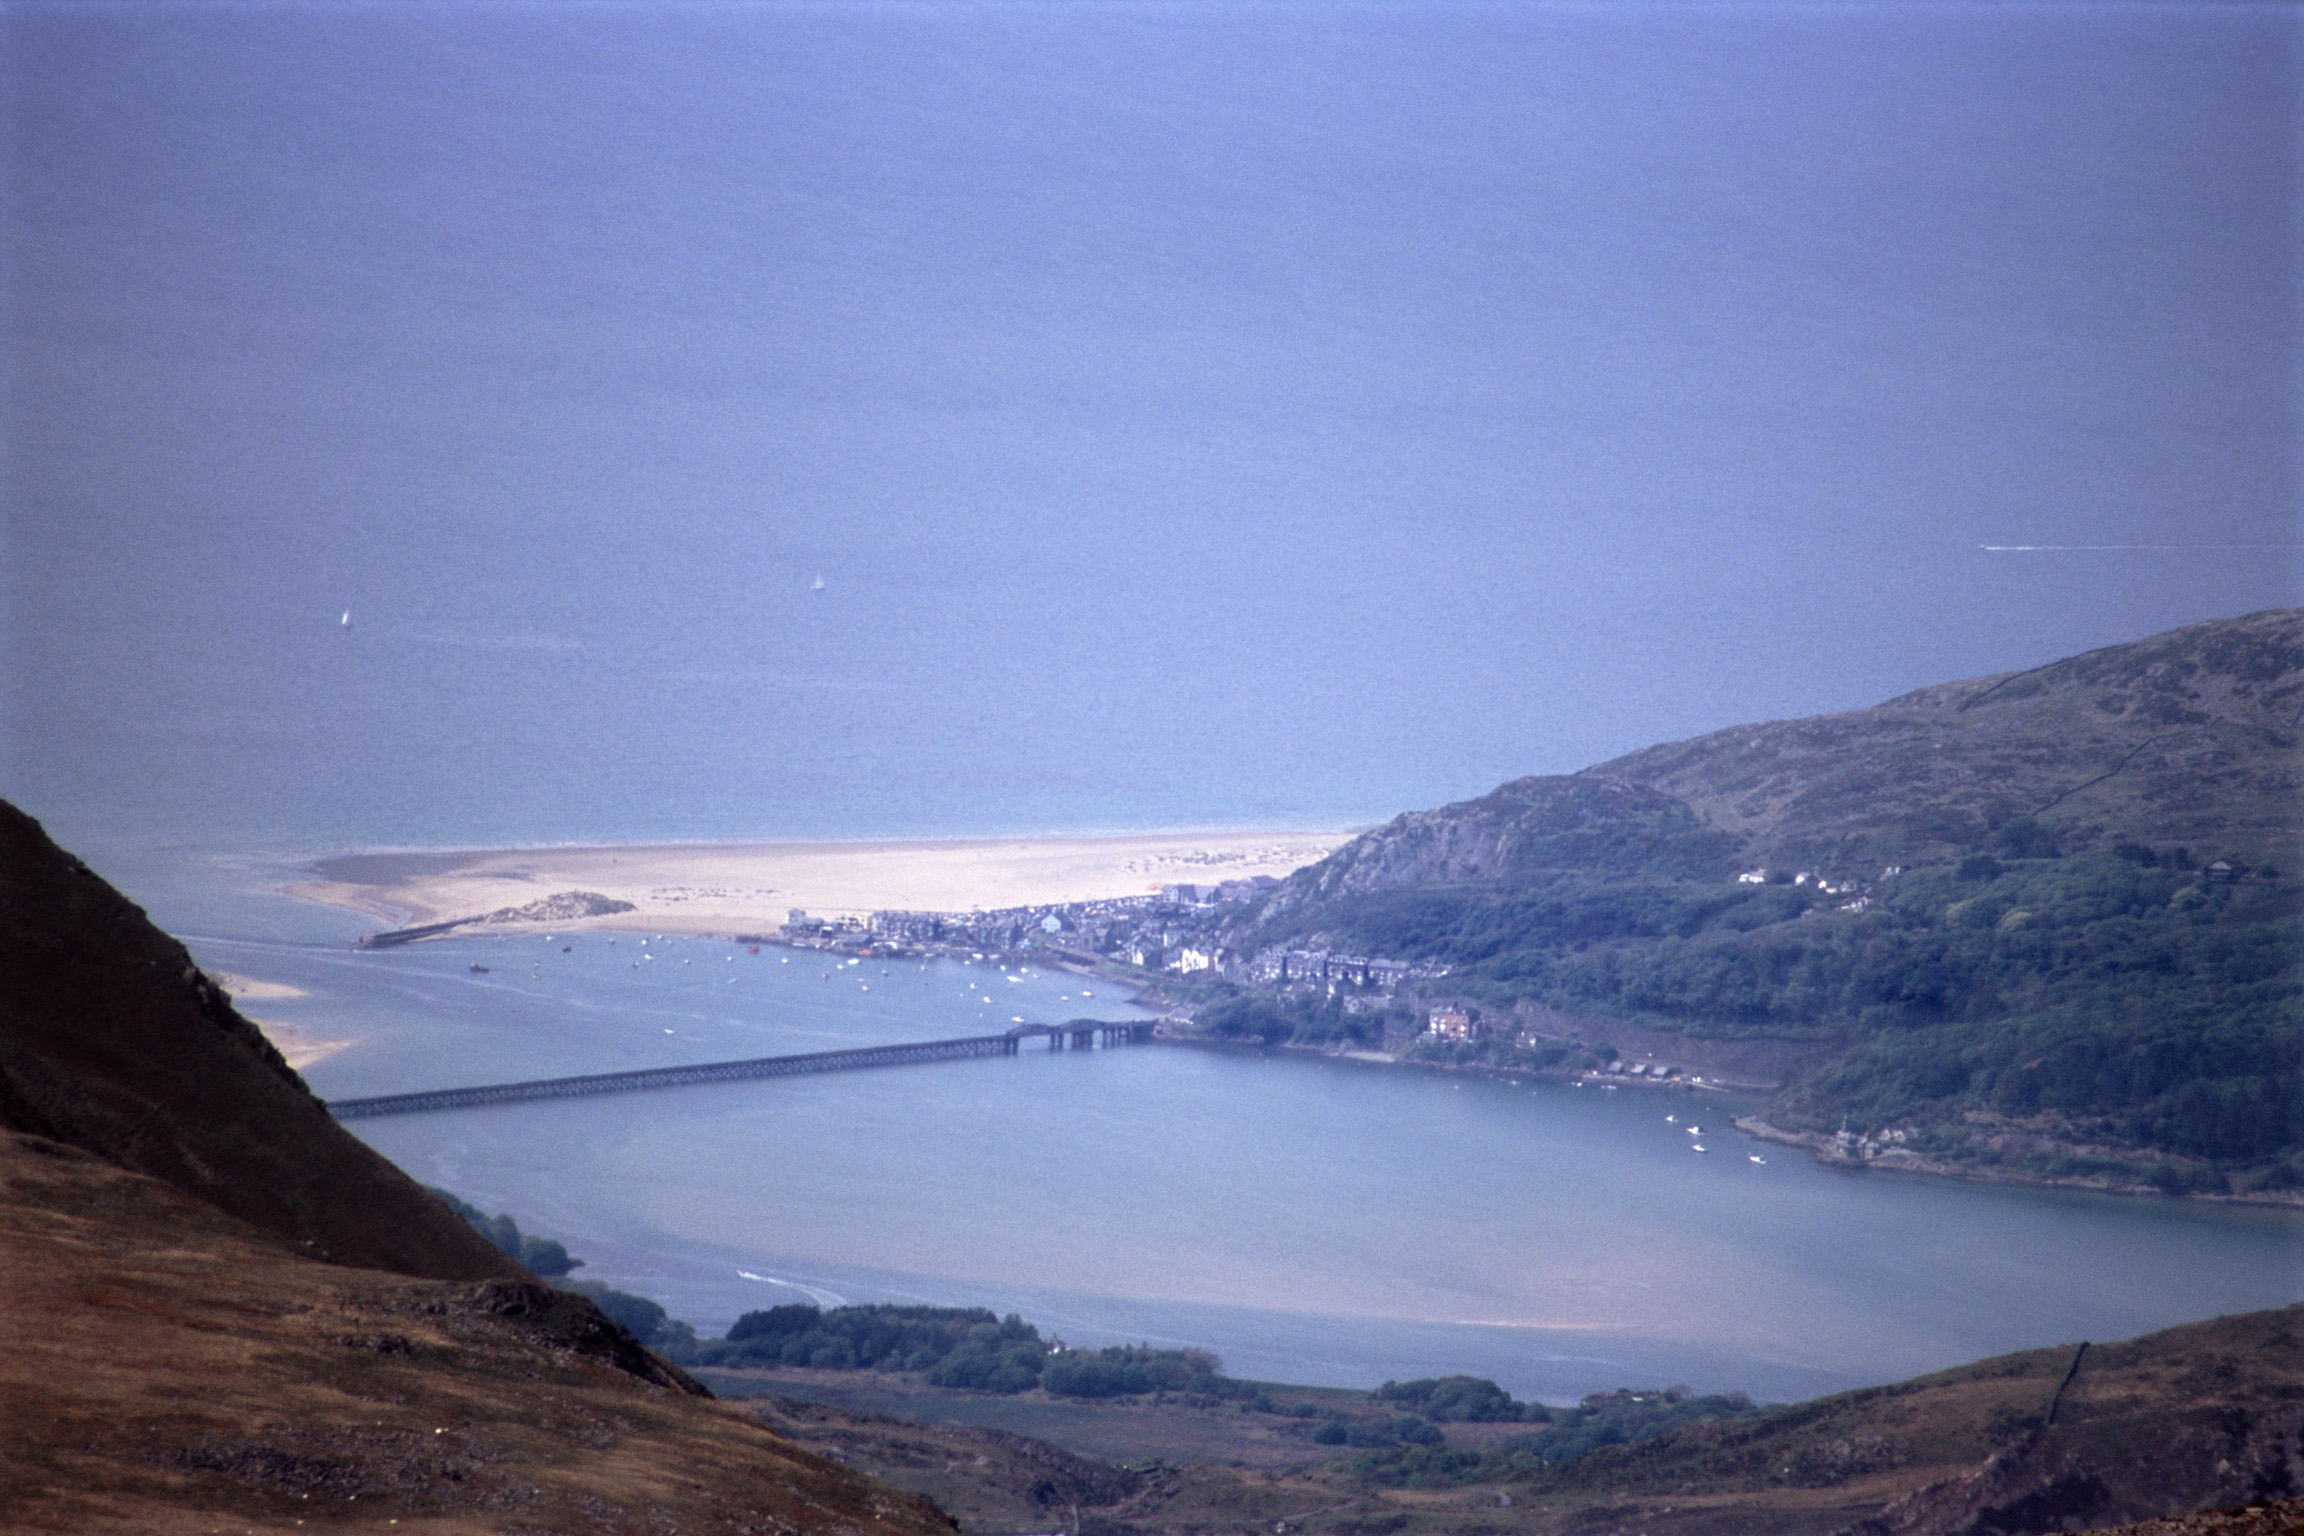 Overview of Coastal Barmouth in Wales